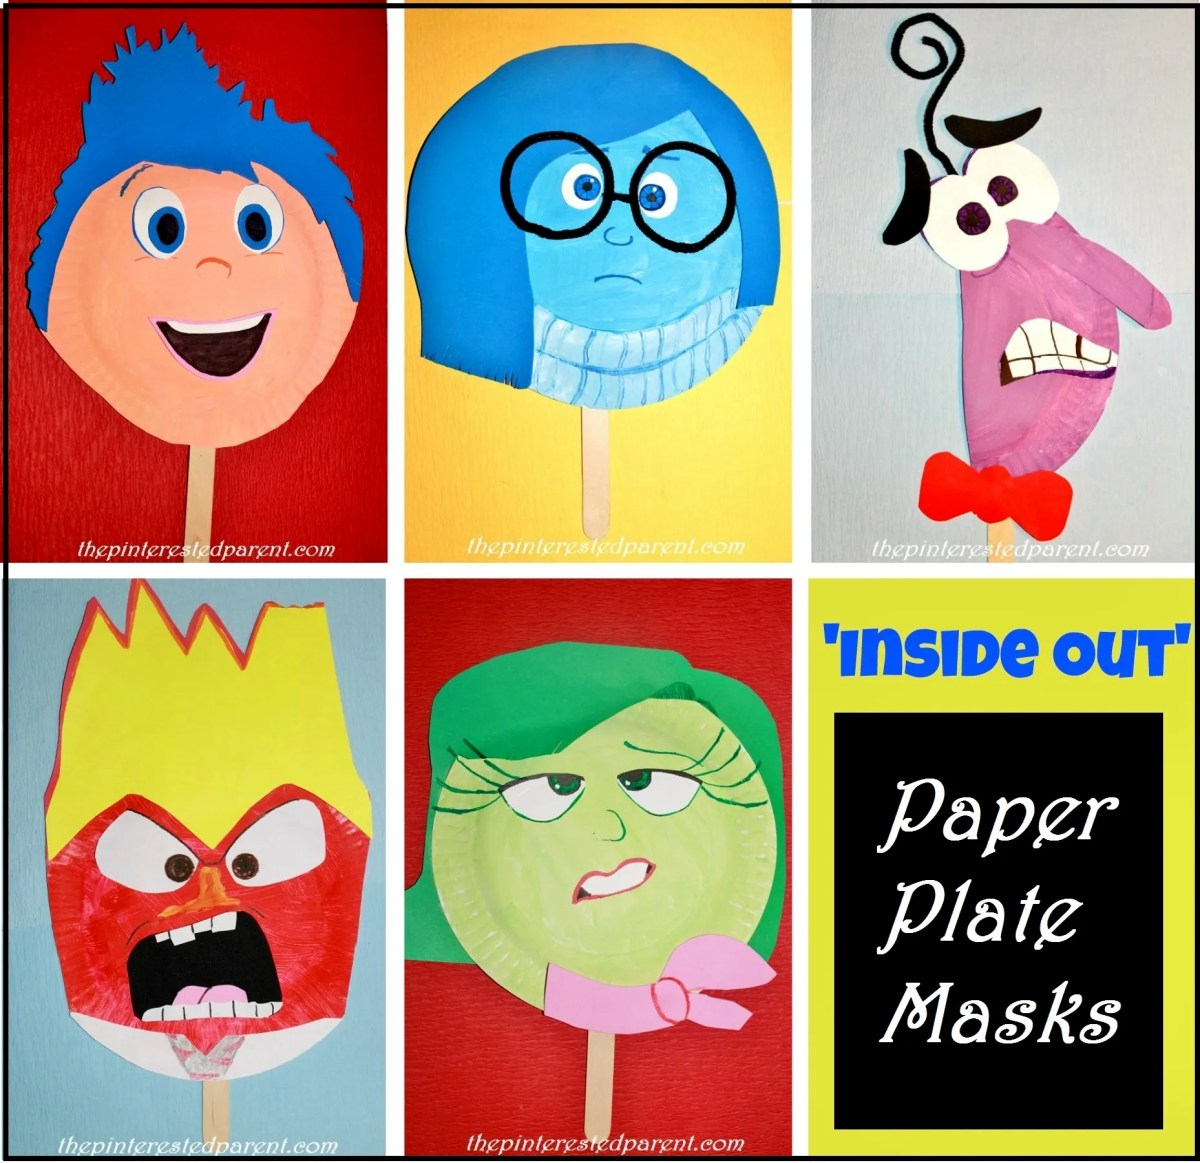 'Inside Out' Paper Plate Masks